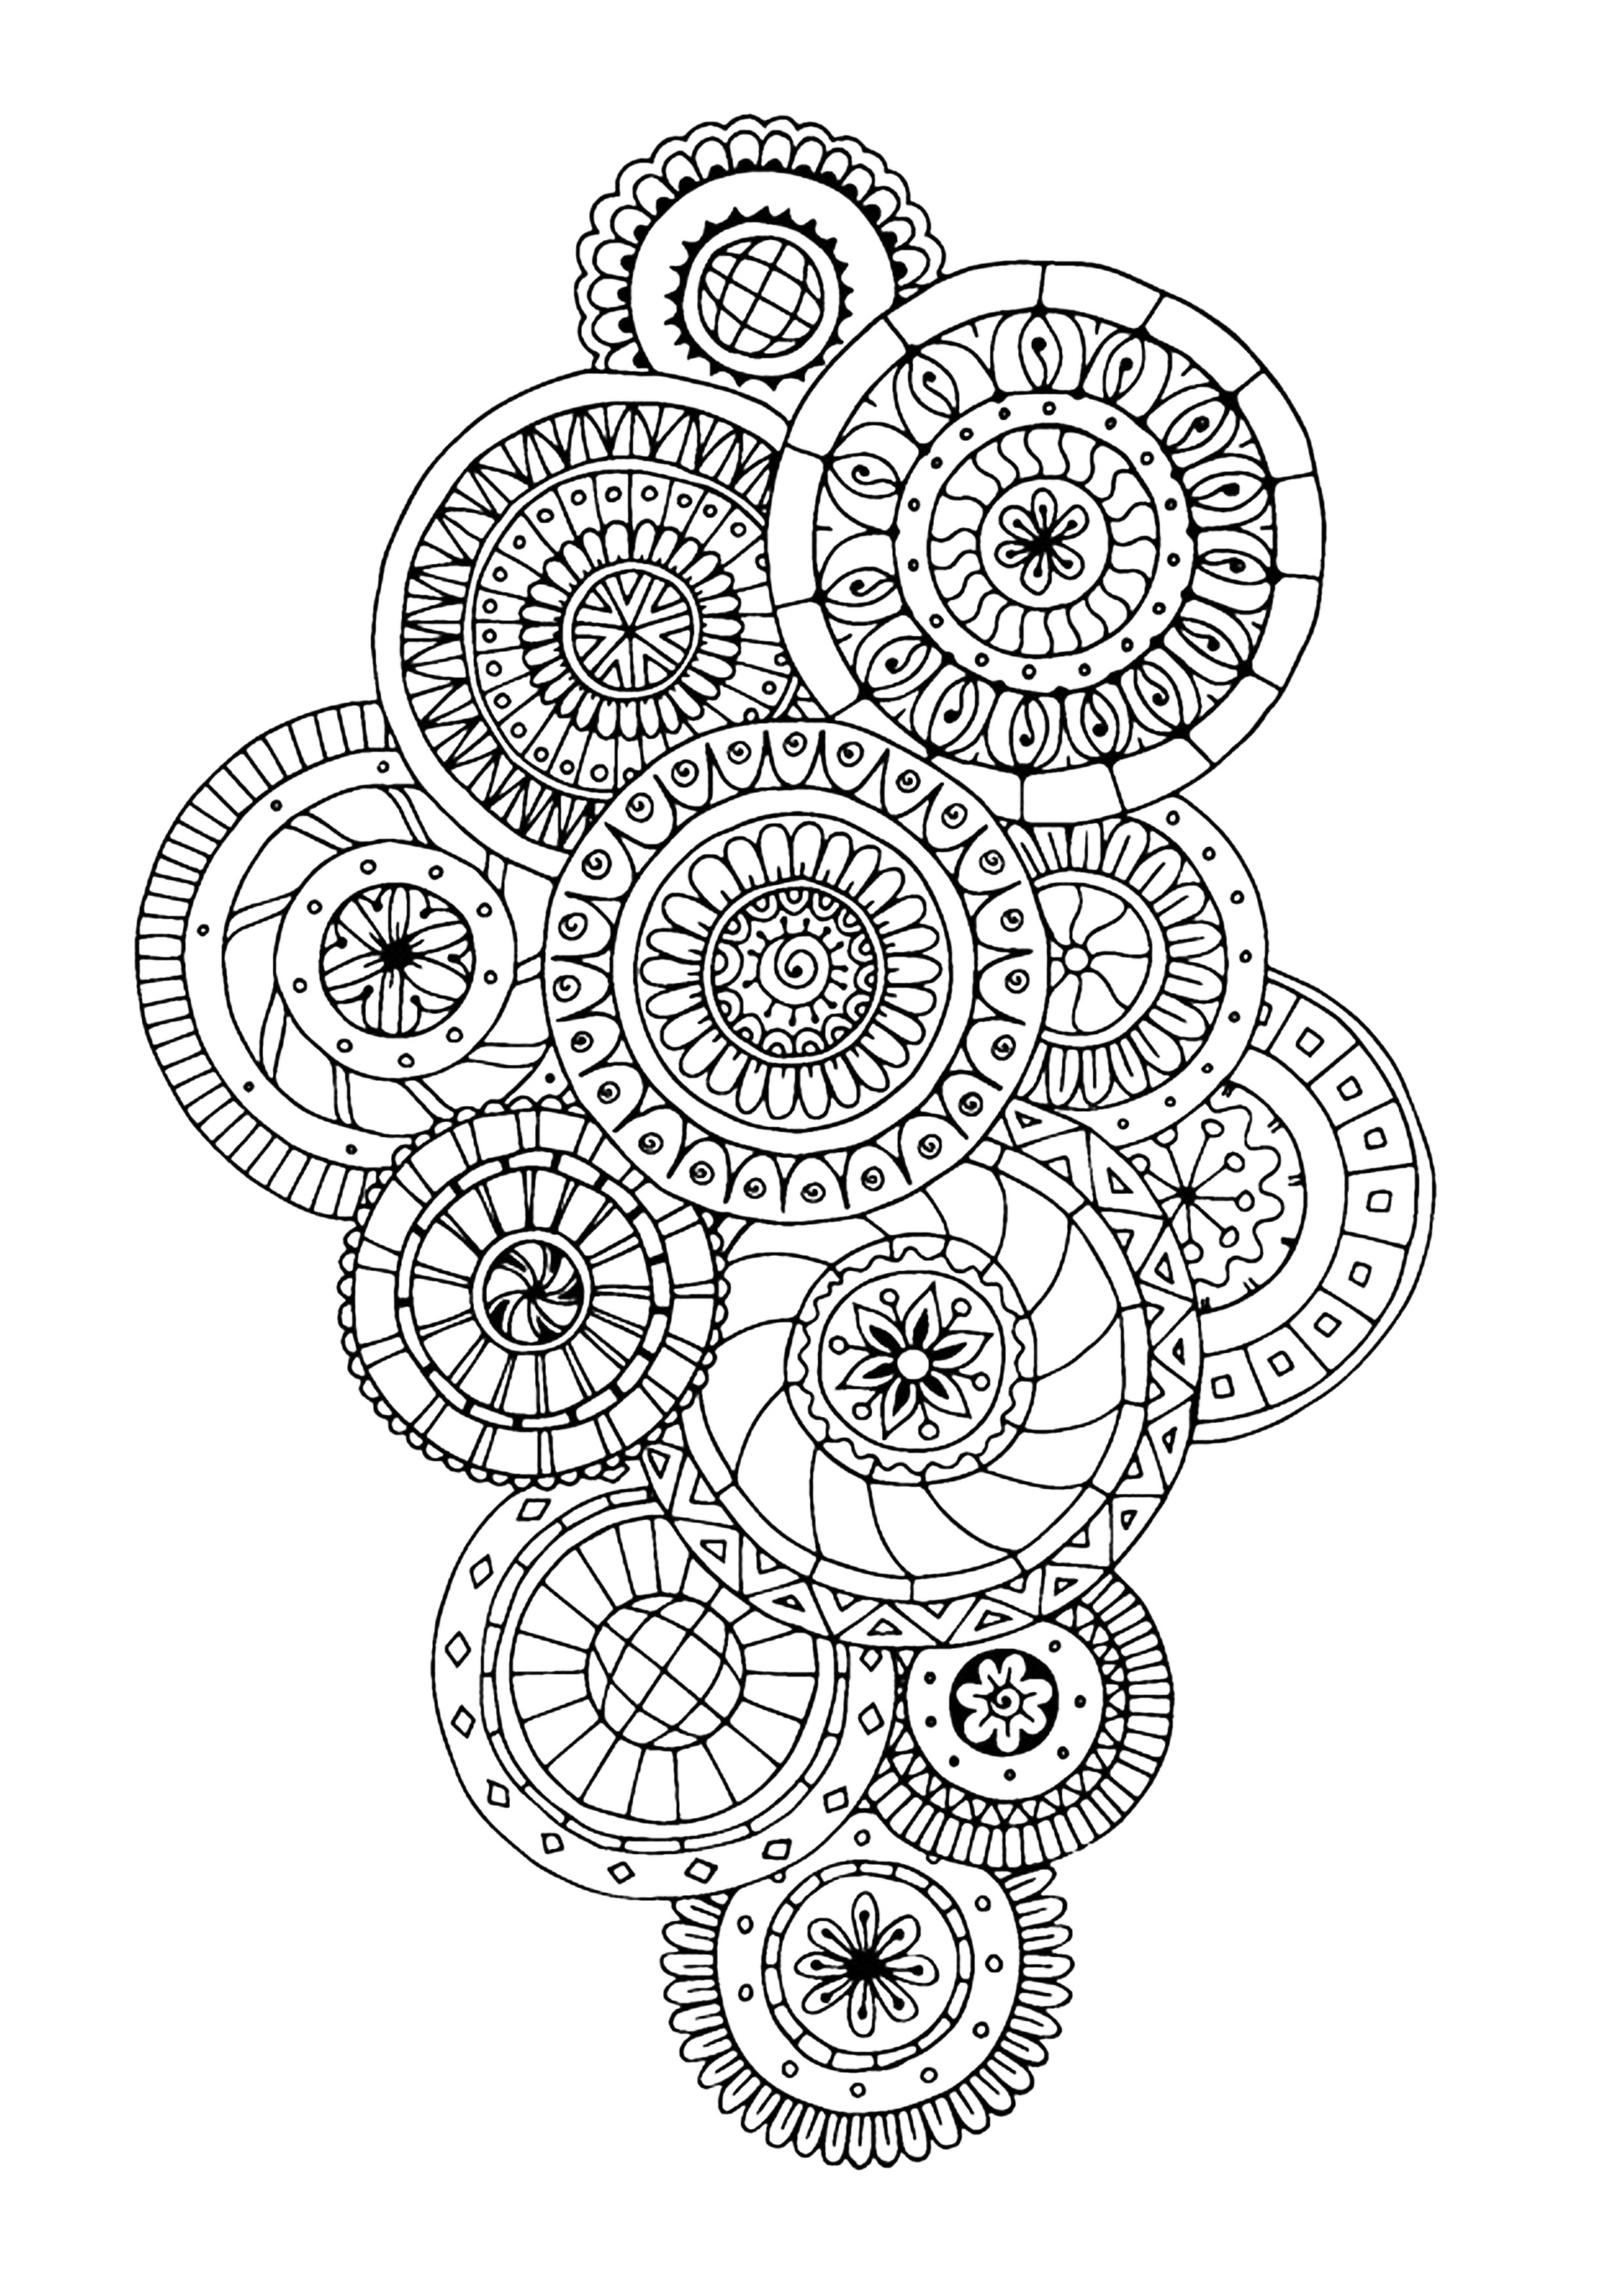 Zen antistress motif abstrait inspiration florale 5 anti stress art th rapie coloriages - Coloriage tatouage ...